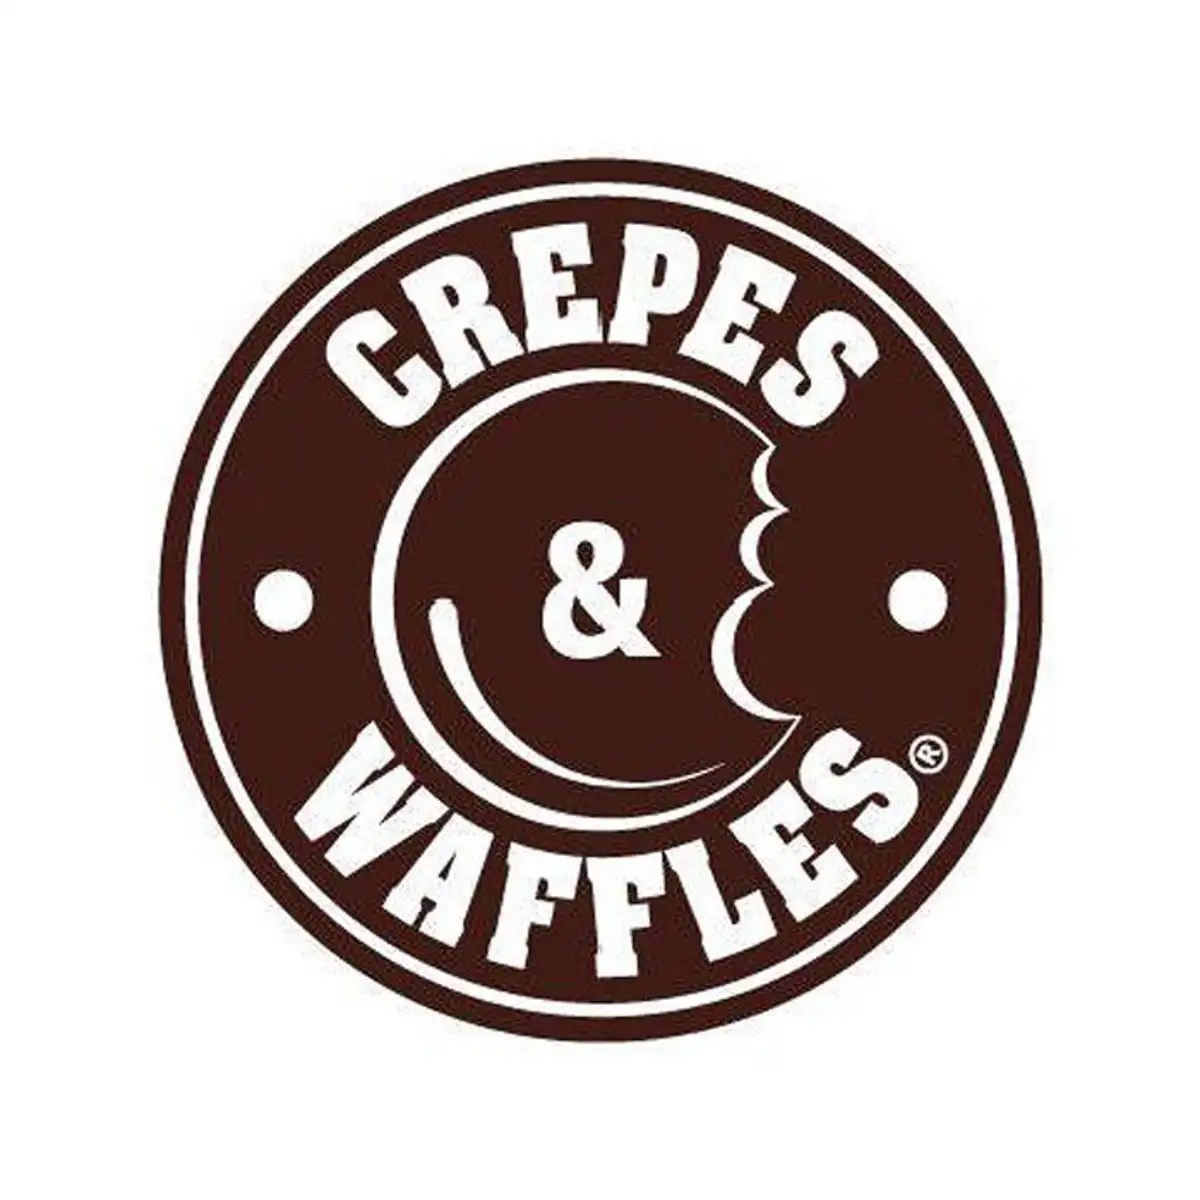 Pass Visa Zona Clientes Crepes And Waffles Salitre Plaza Crepes Centro Comercial